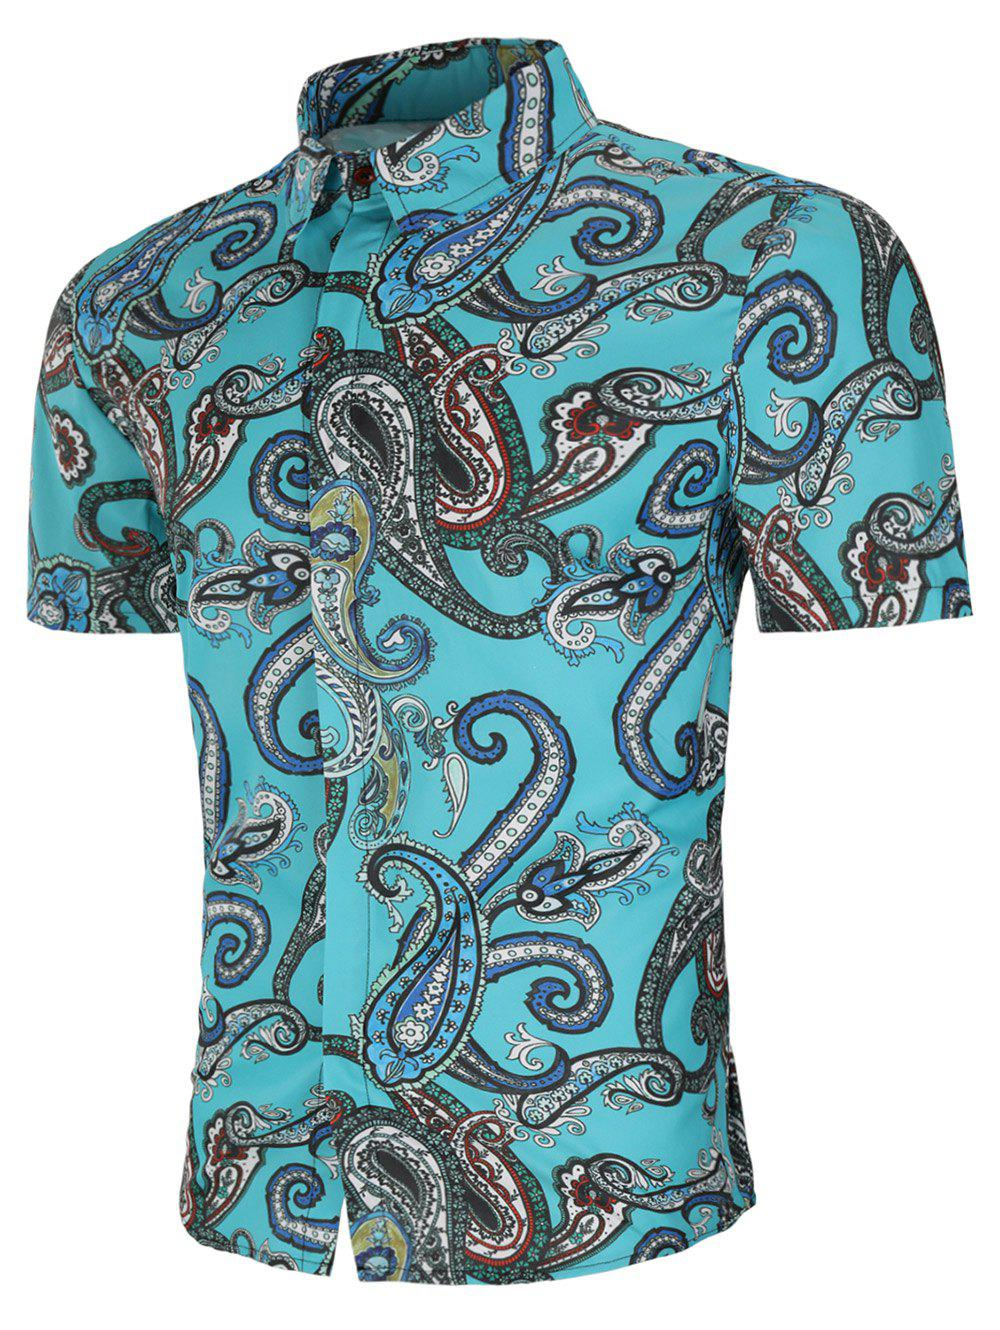 Button Up Allover Paisley Print Shirt - multicolor M